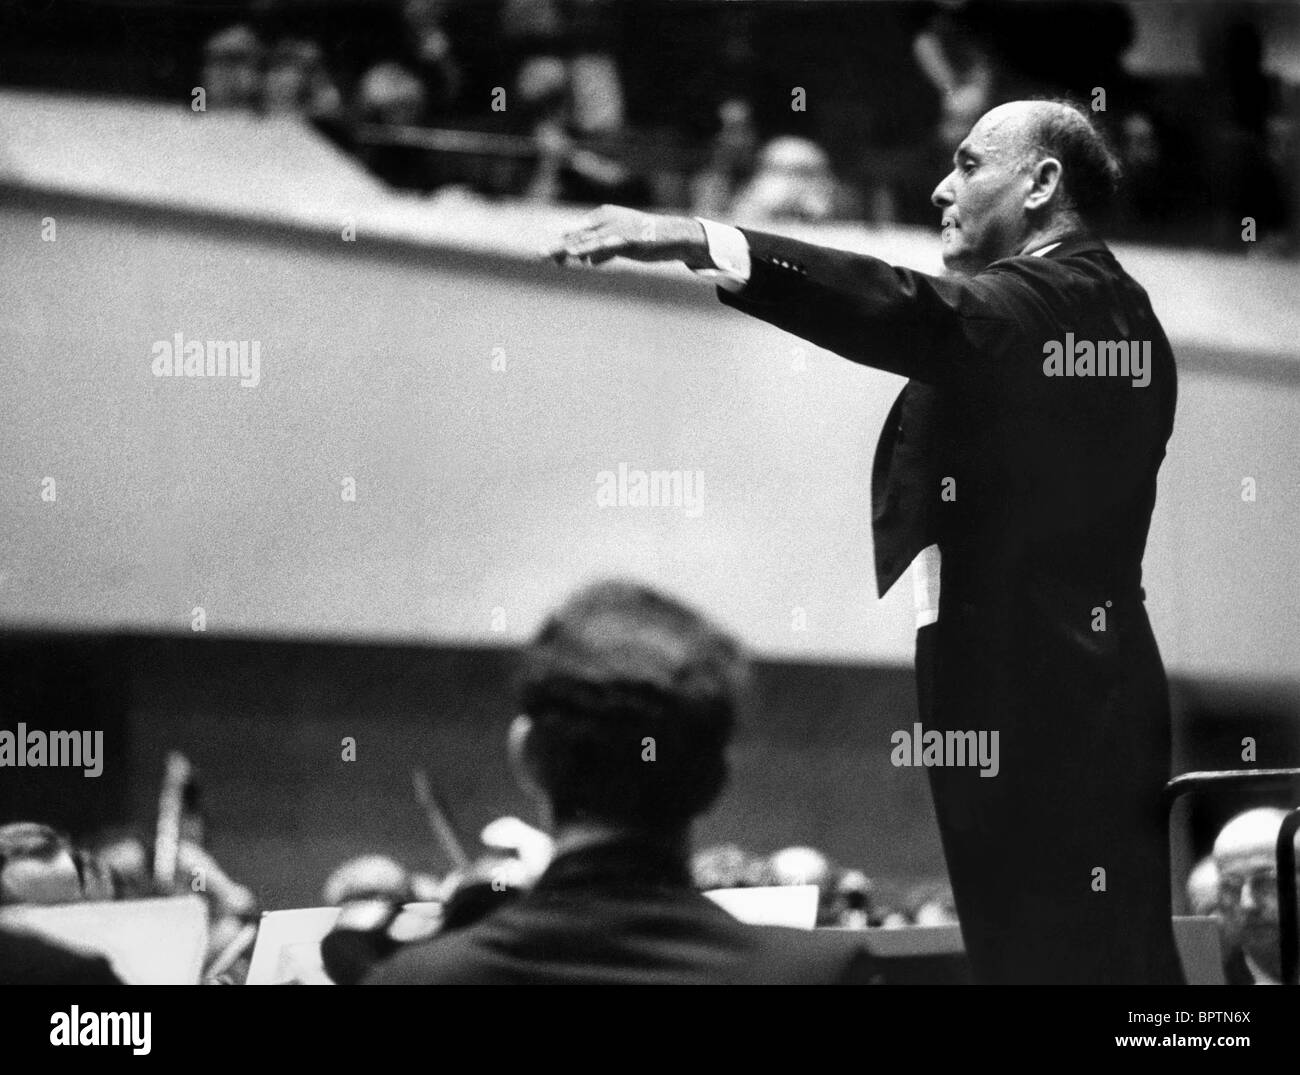 GEORG SOLTI CONDUCTOR (1969) - Stock Image